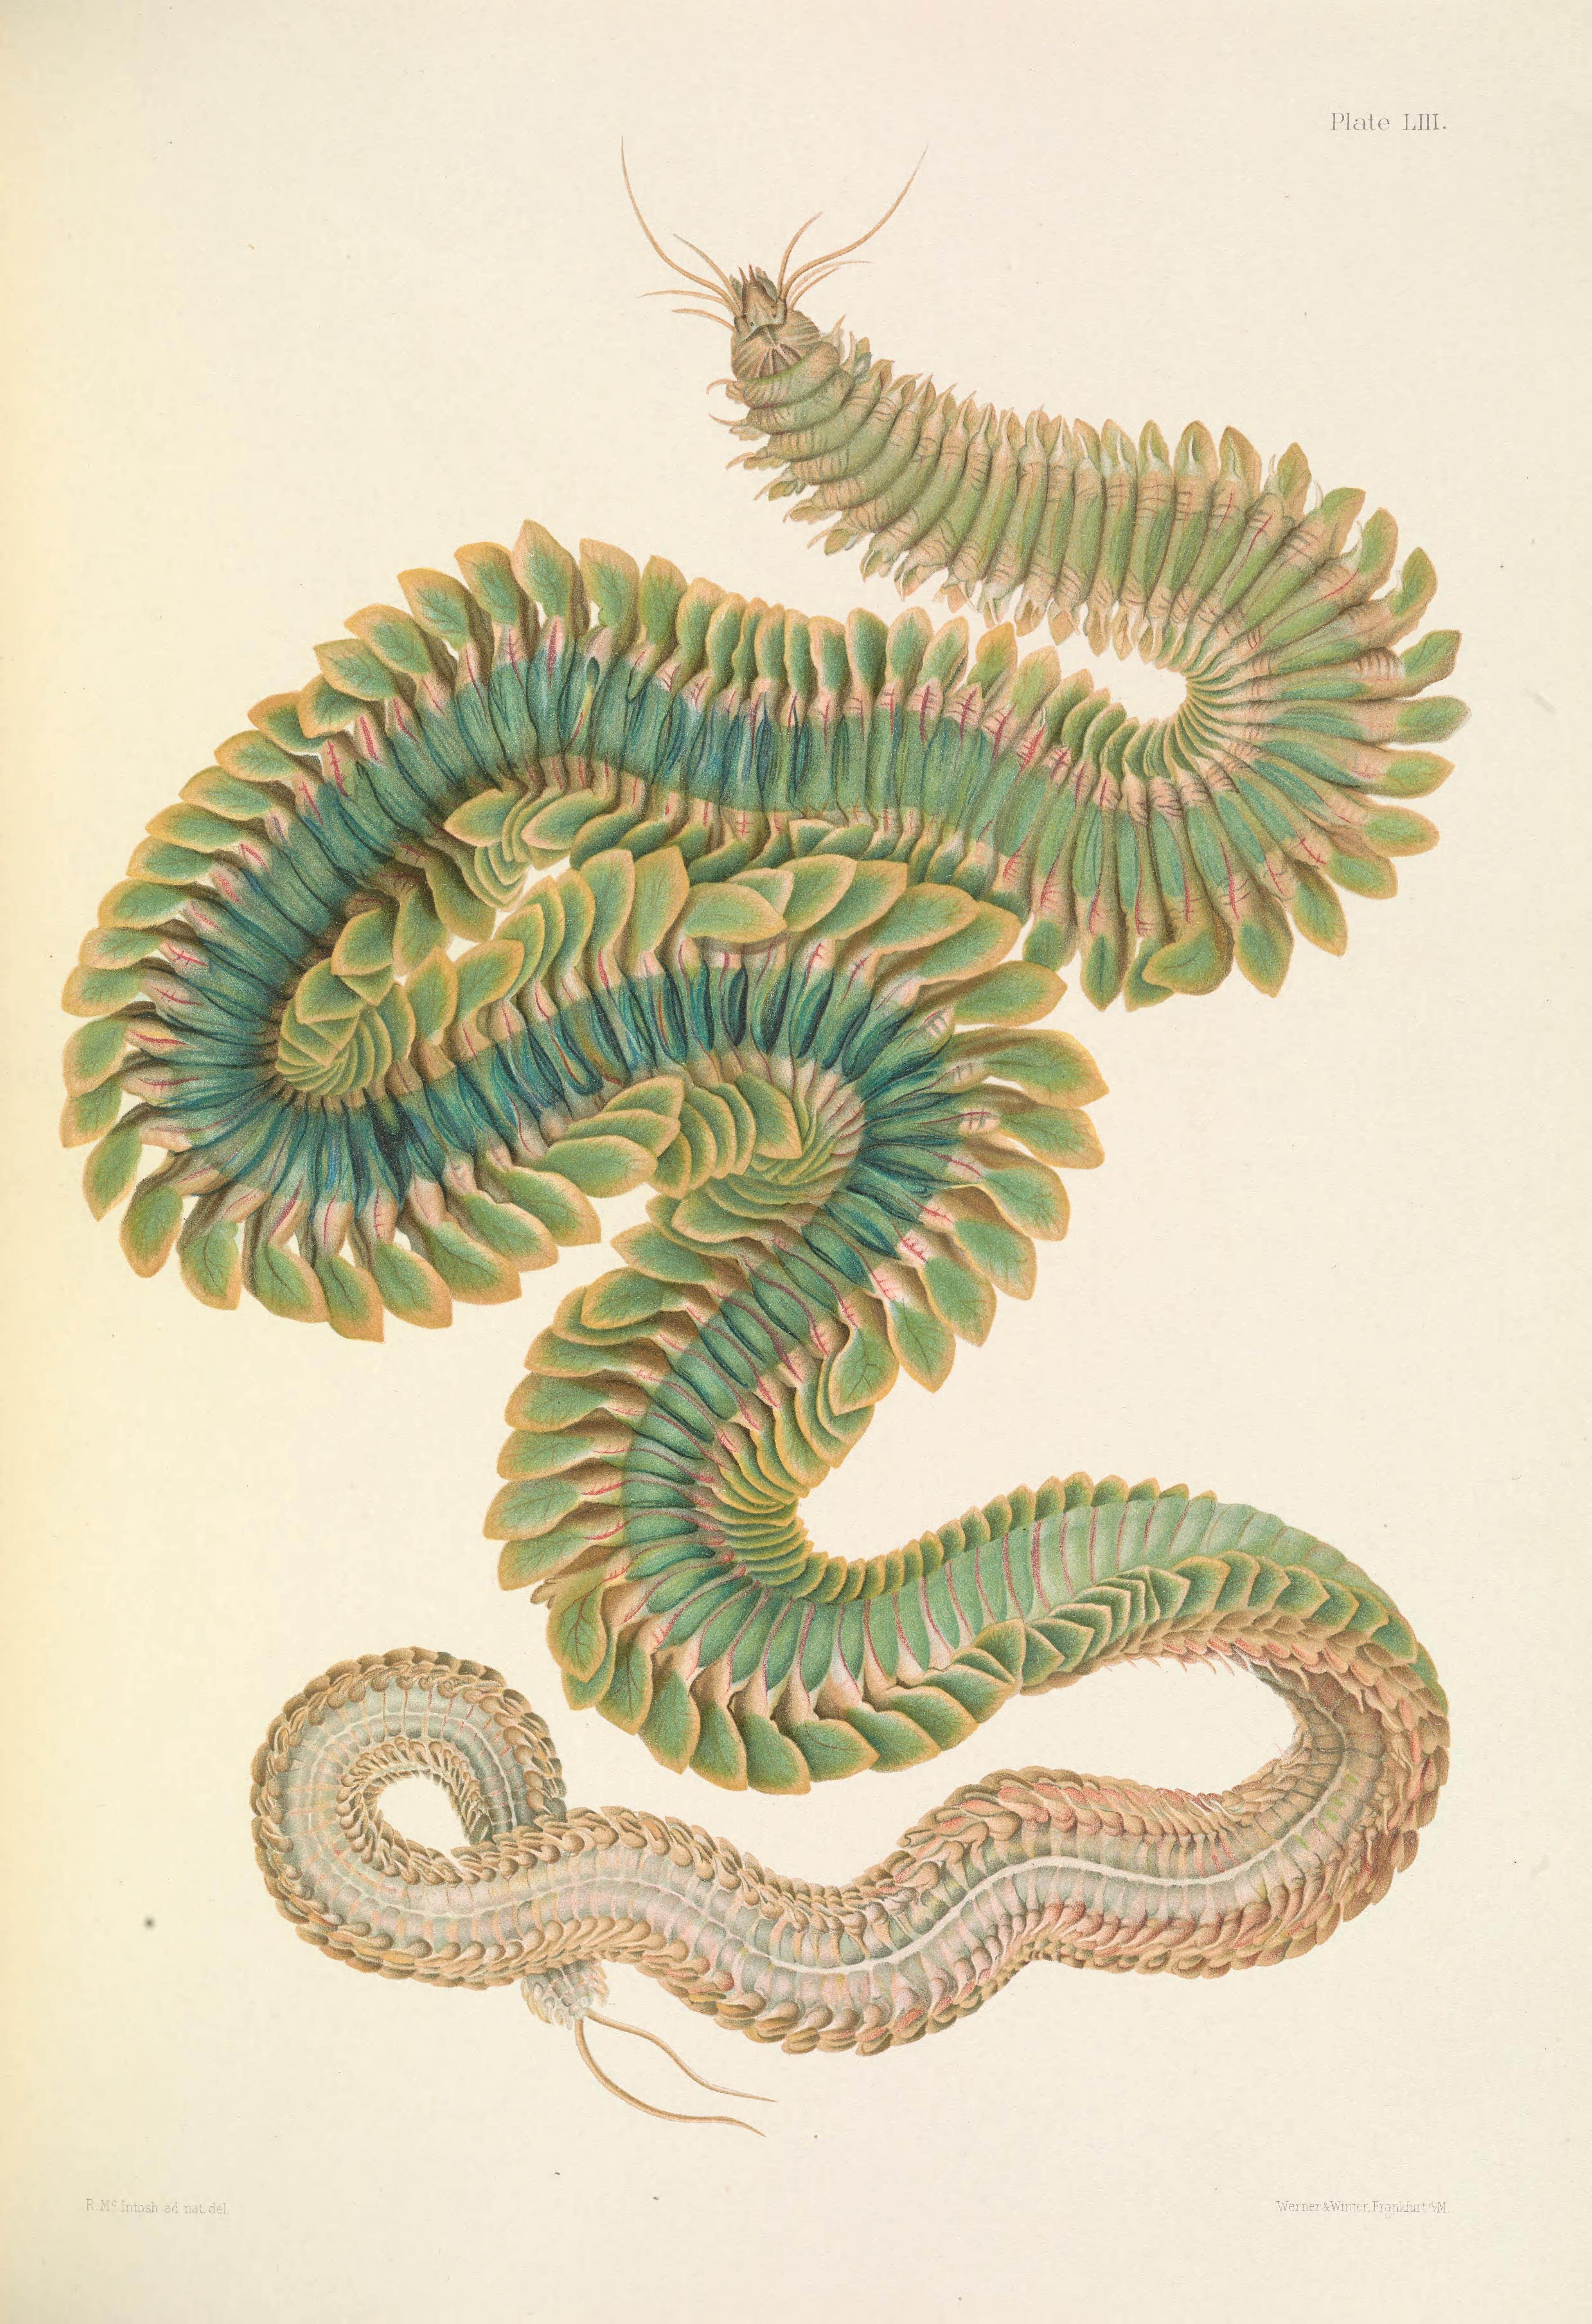 These Polychaetes Will Make You Feel All Worm and Fuzzy